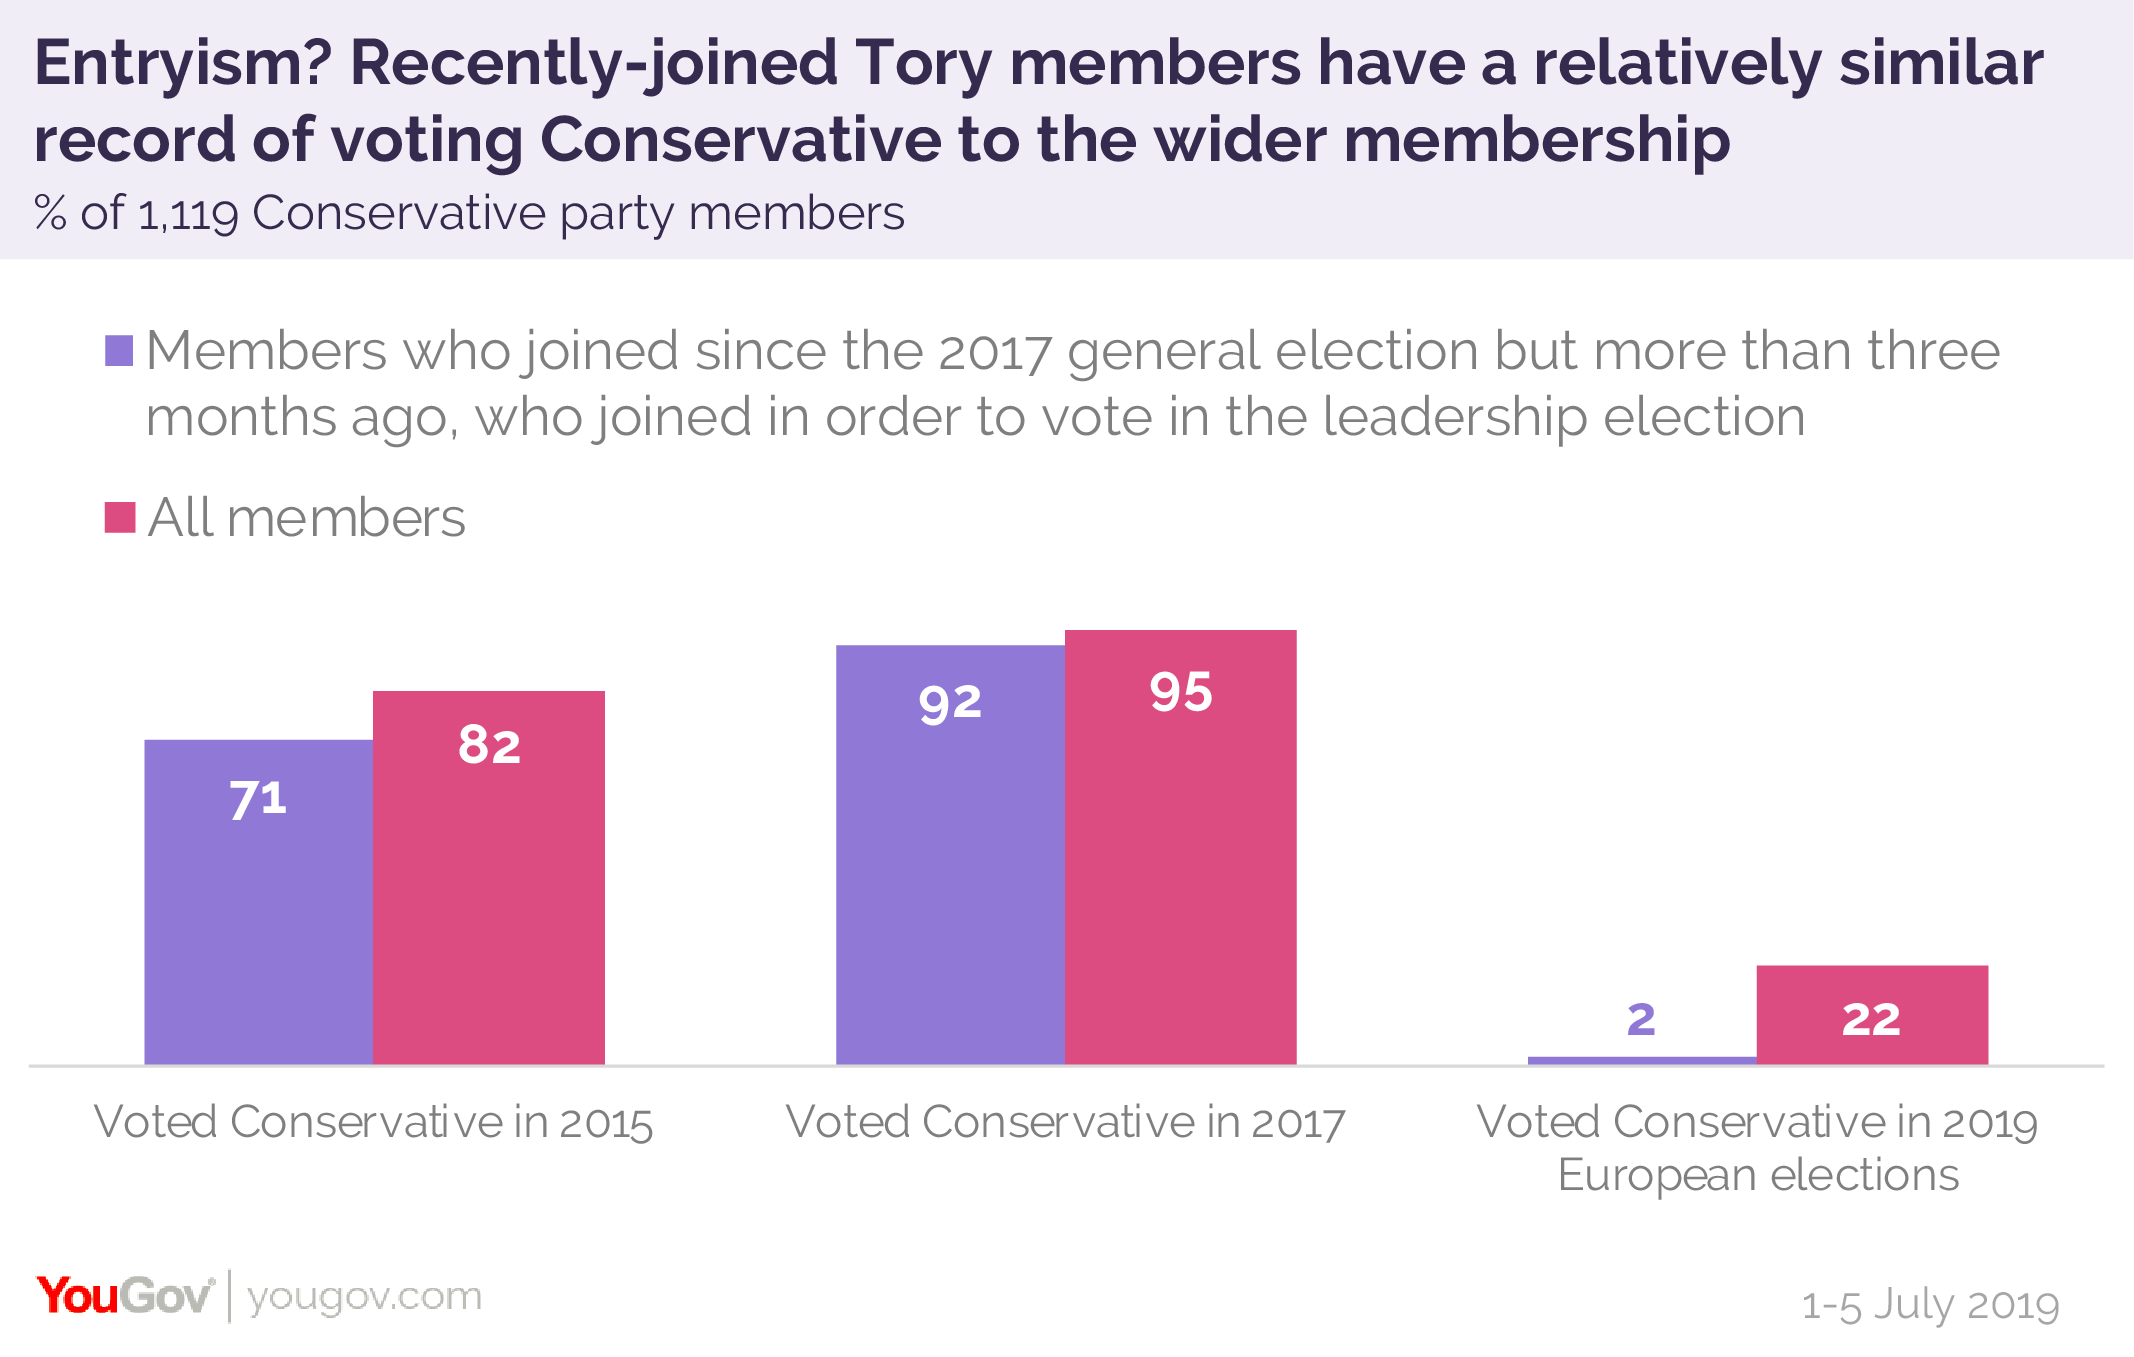 Chris%20Curtis%20Tory%20membership%20vote%20comparison-01.png